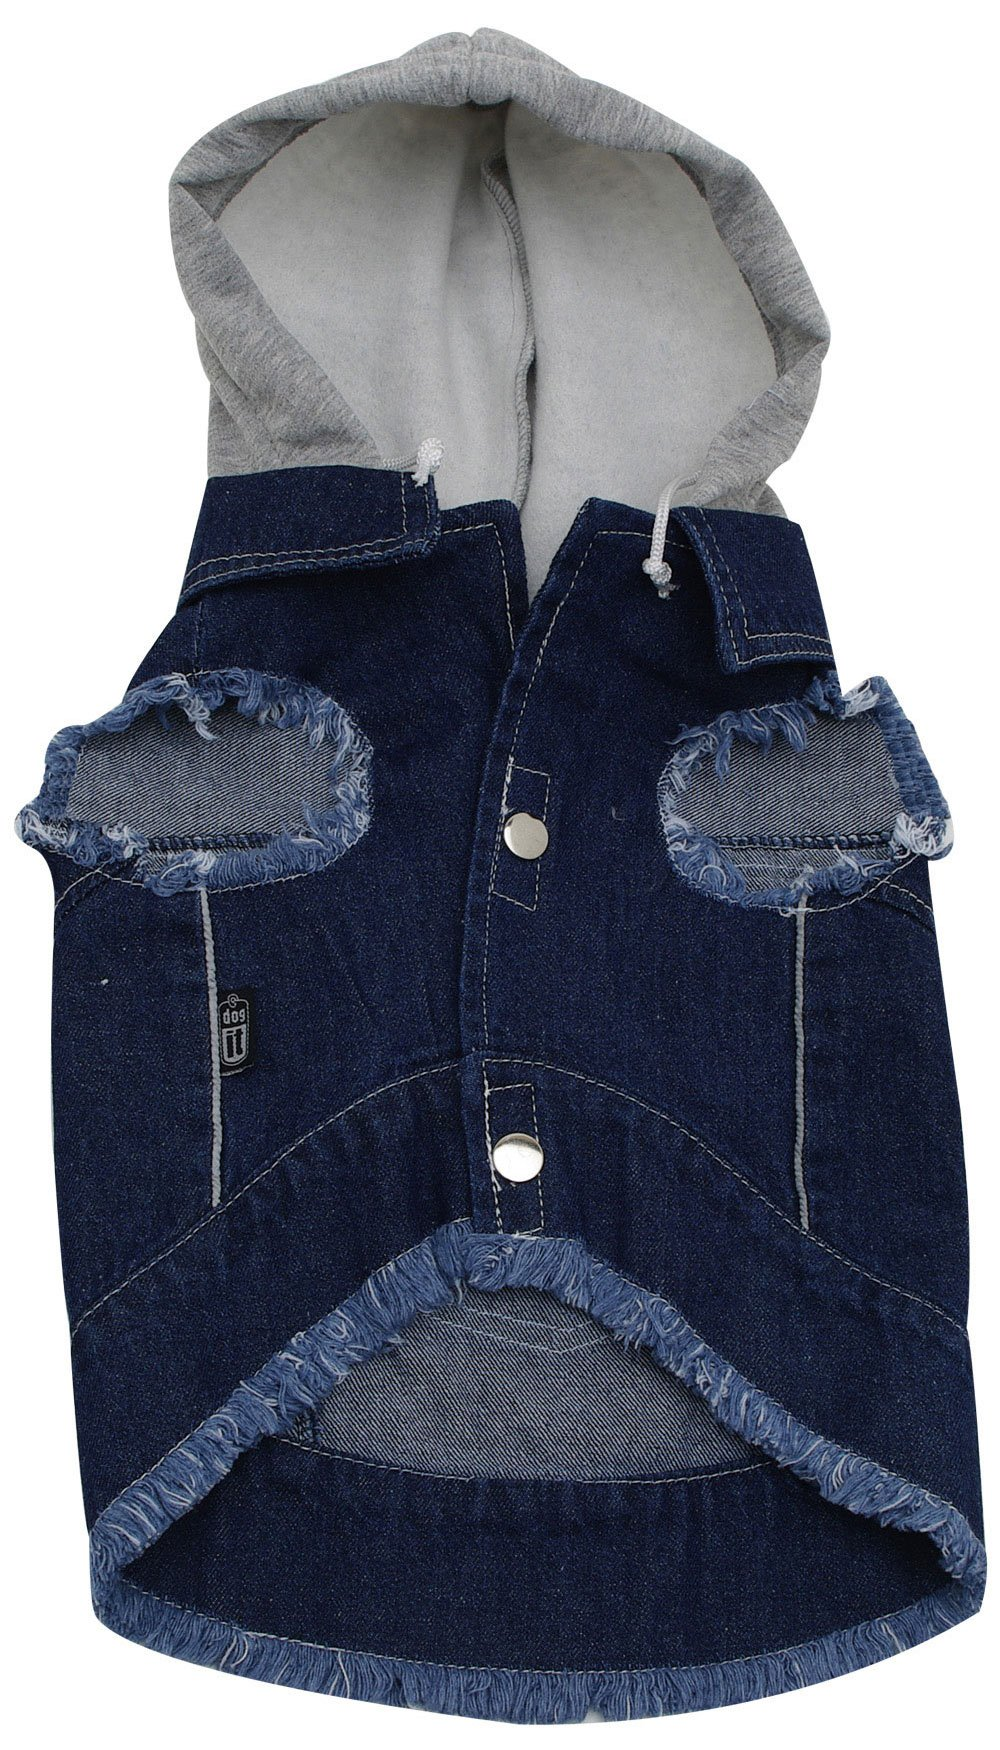 Dogit Hooded Denim Dog Jacket, X-Large, Dark Blue